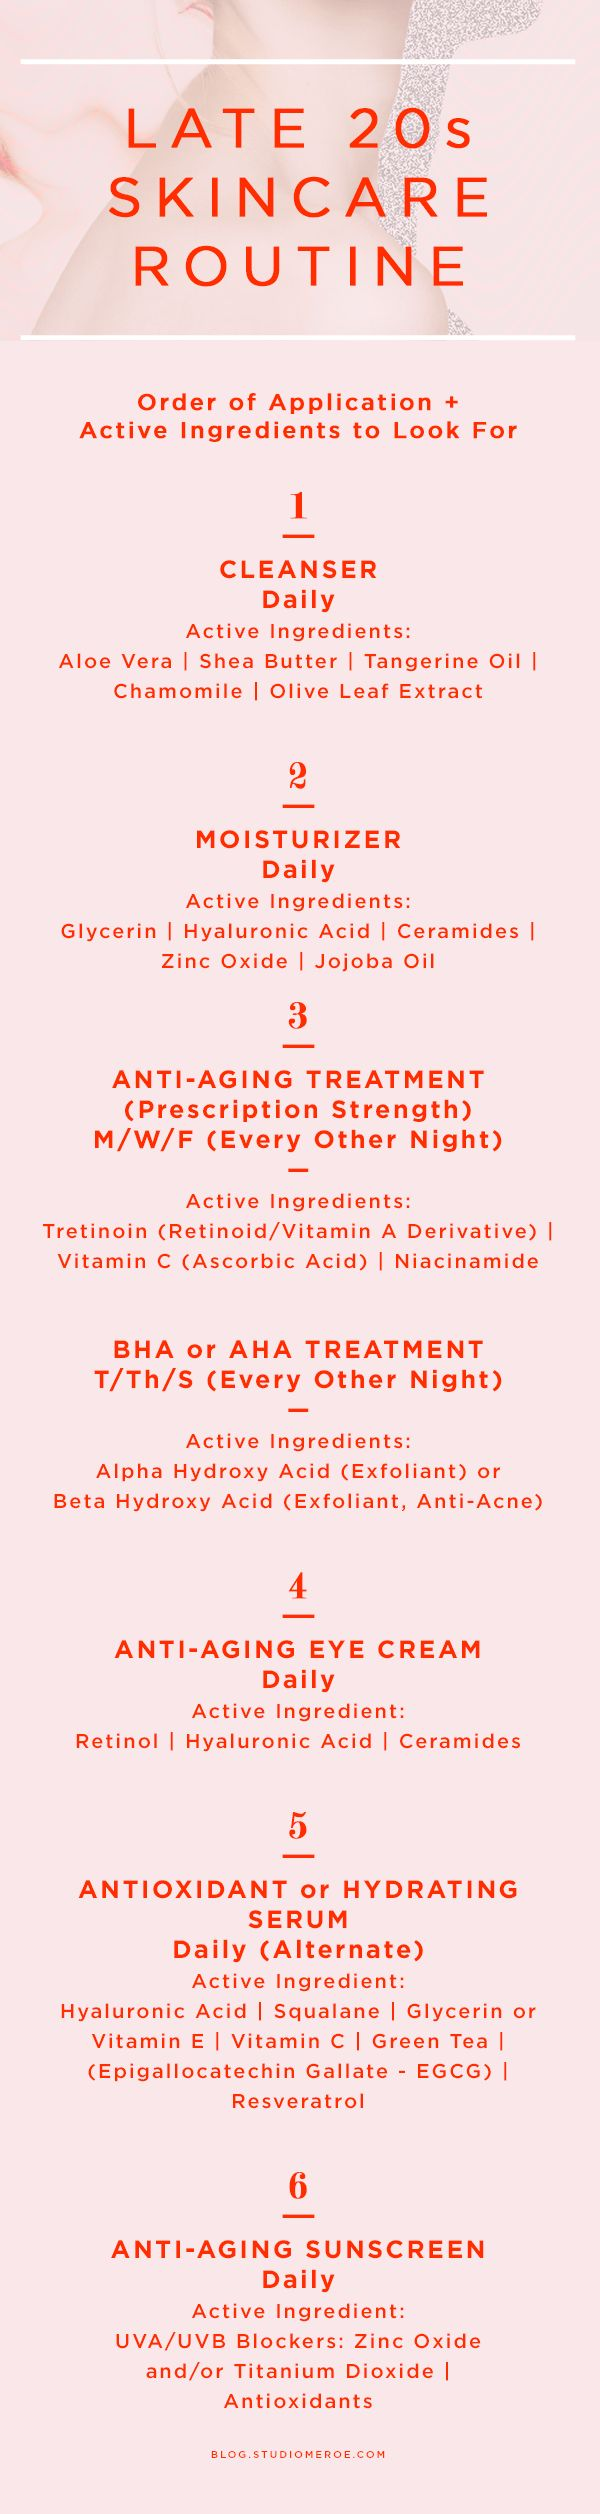 Late 20s skin care routine | Order of application active ingredients to look for | skin care tips | anti-aging | Candace | Studio Meroe | Read more here: www.studiomeroe.com Skin Care products - http://amzn.to/2iSUZHs